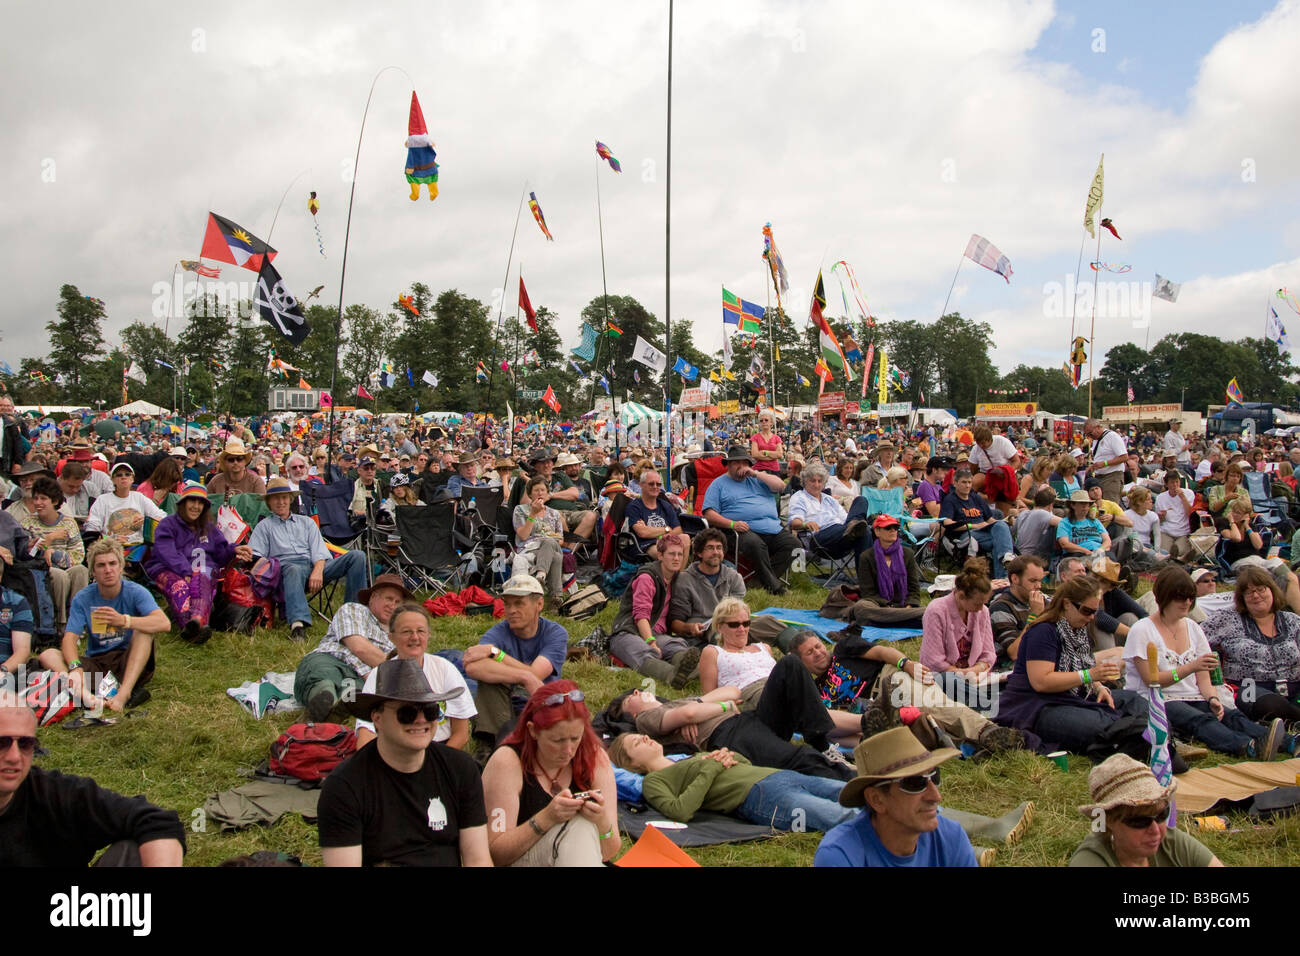 the crowd at Fairports Cropredy Convention music festival 2008 near Banbury England UK - Stock Image